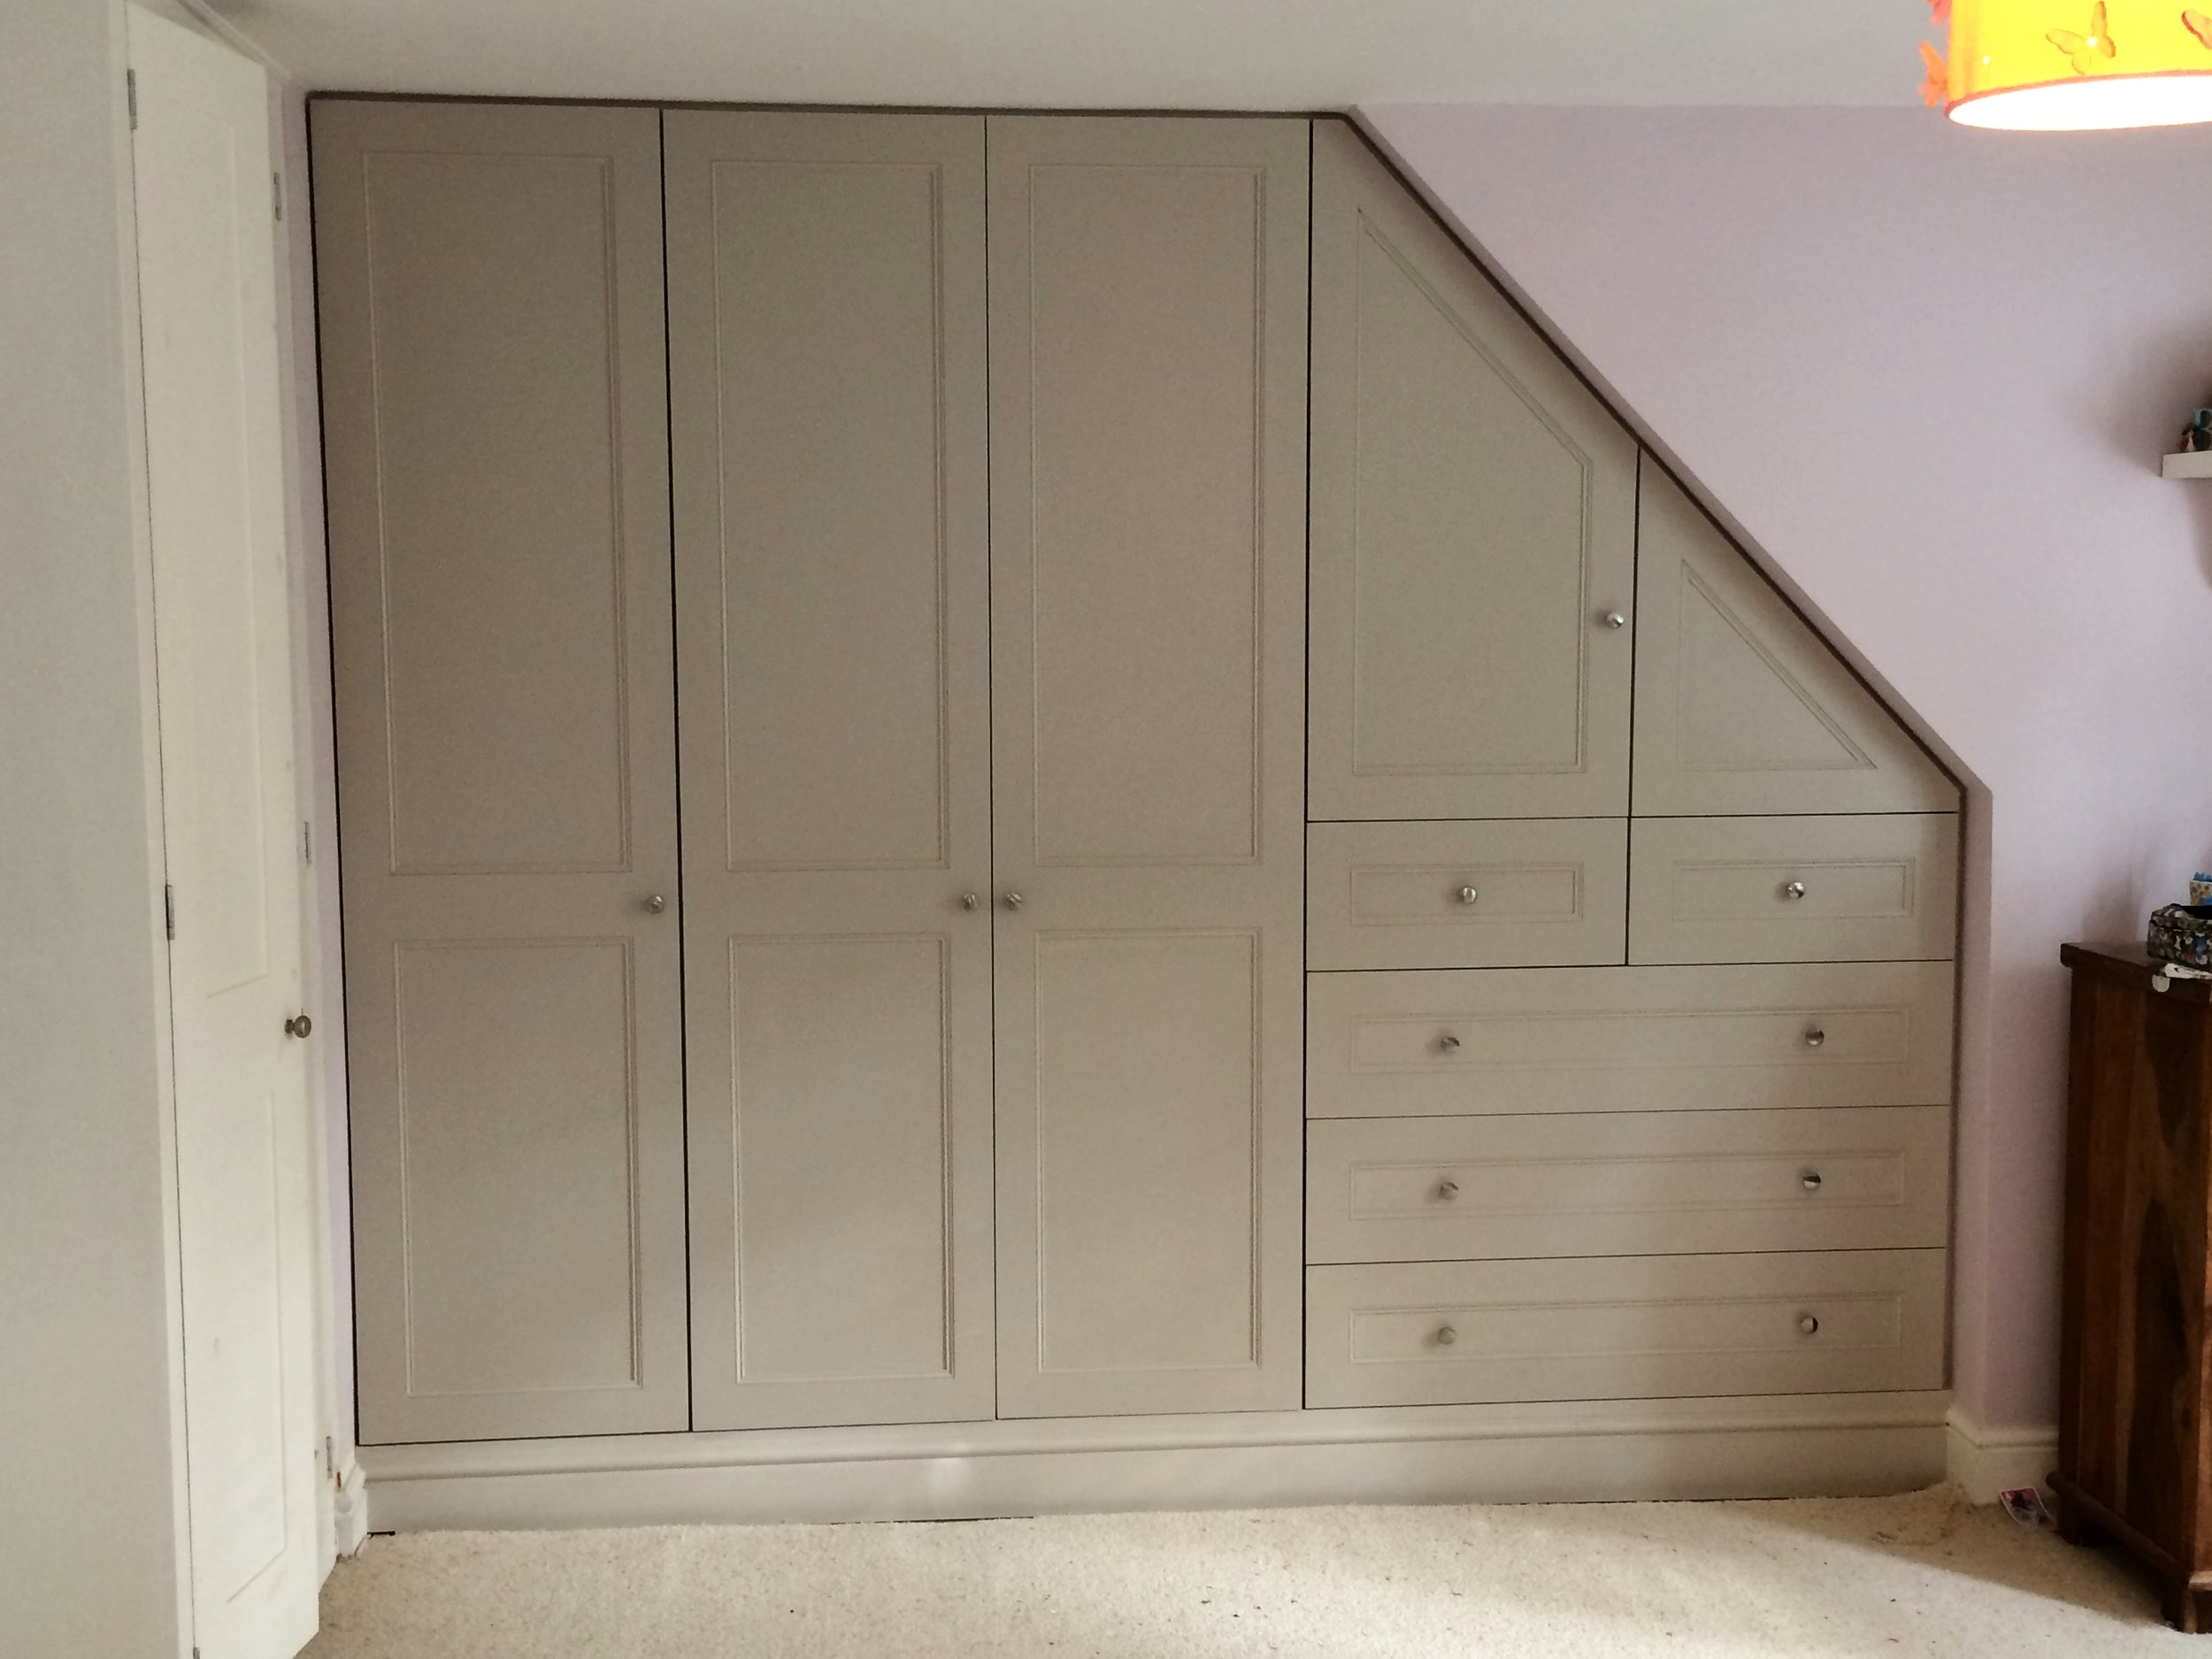 Charming Bespoke Built In Wardrobes And Storage Solutions For Any Space